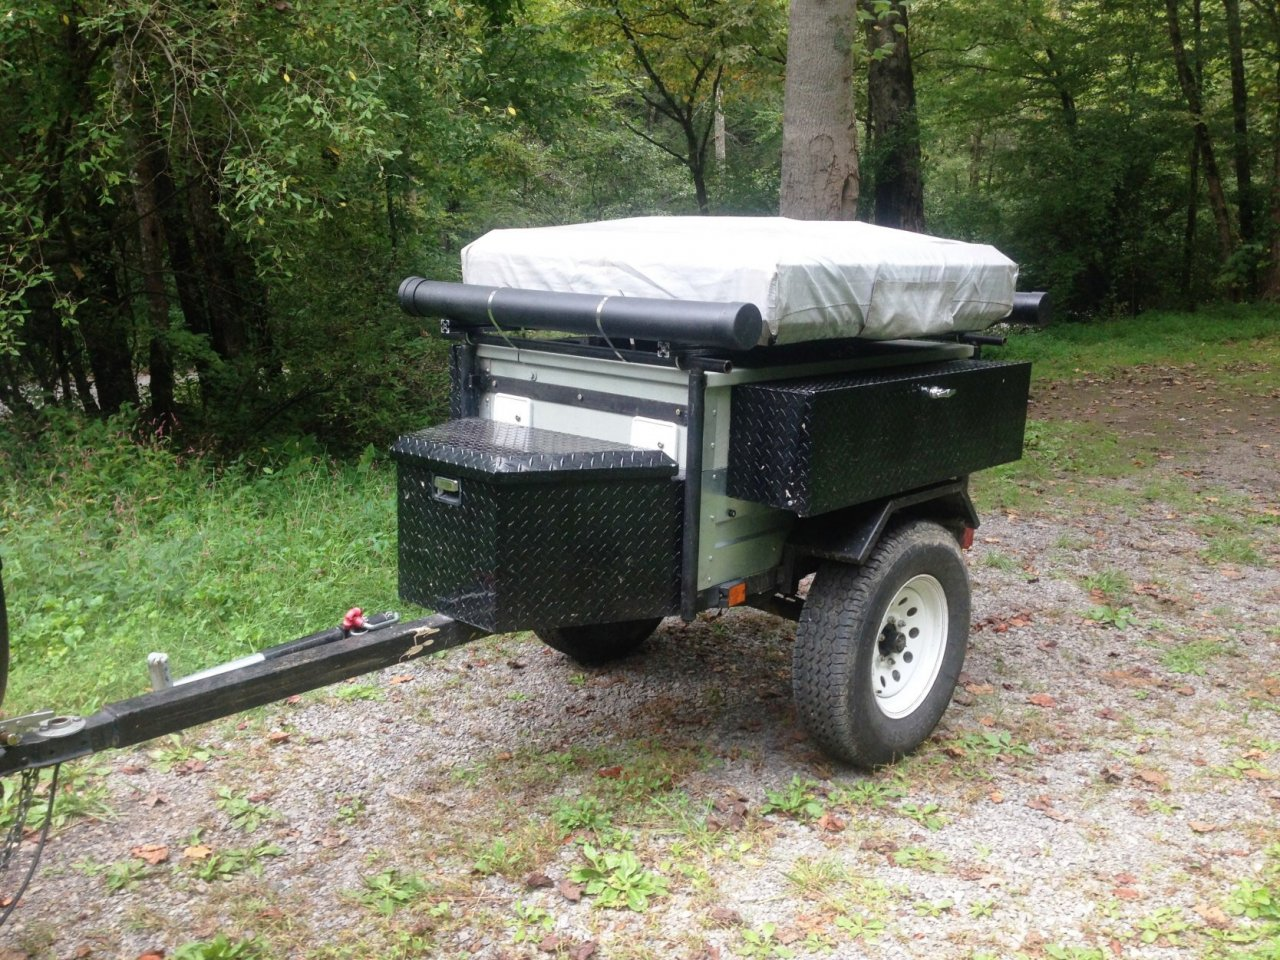 Campers For Sale In Louisiana >> For Sale - Expedition/Overland trailer for sale $4K | IH8MUD Forum